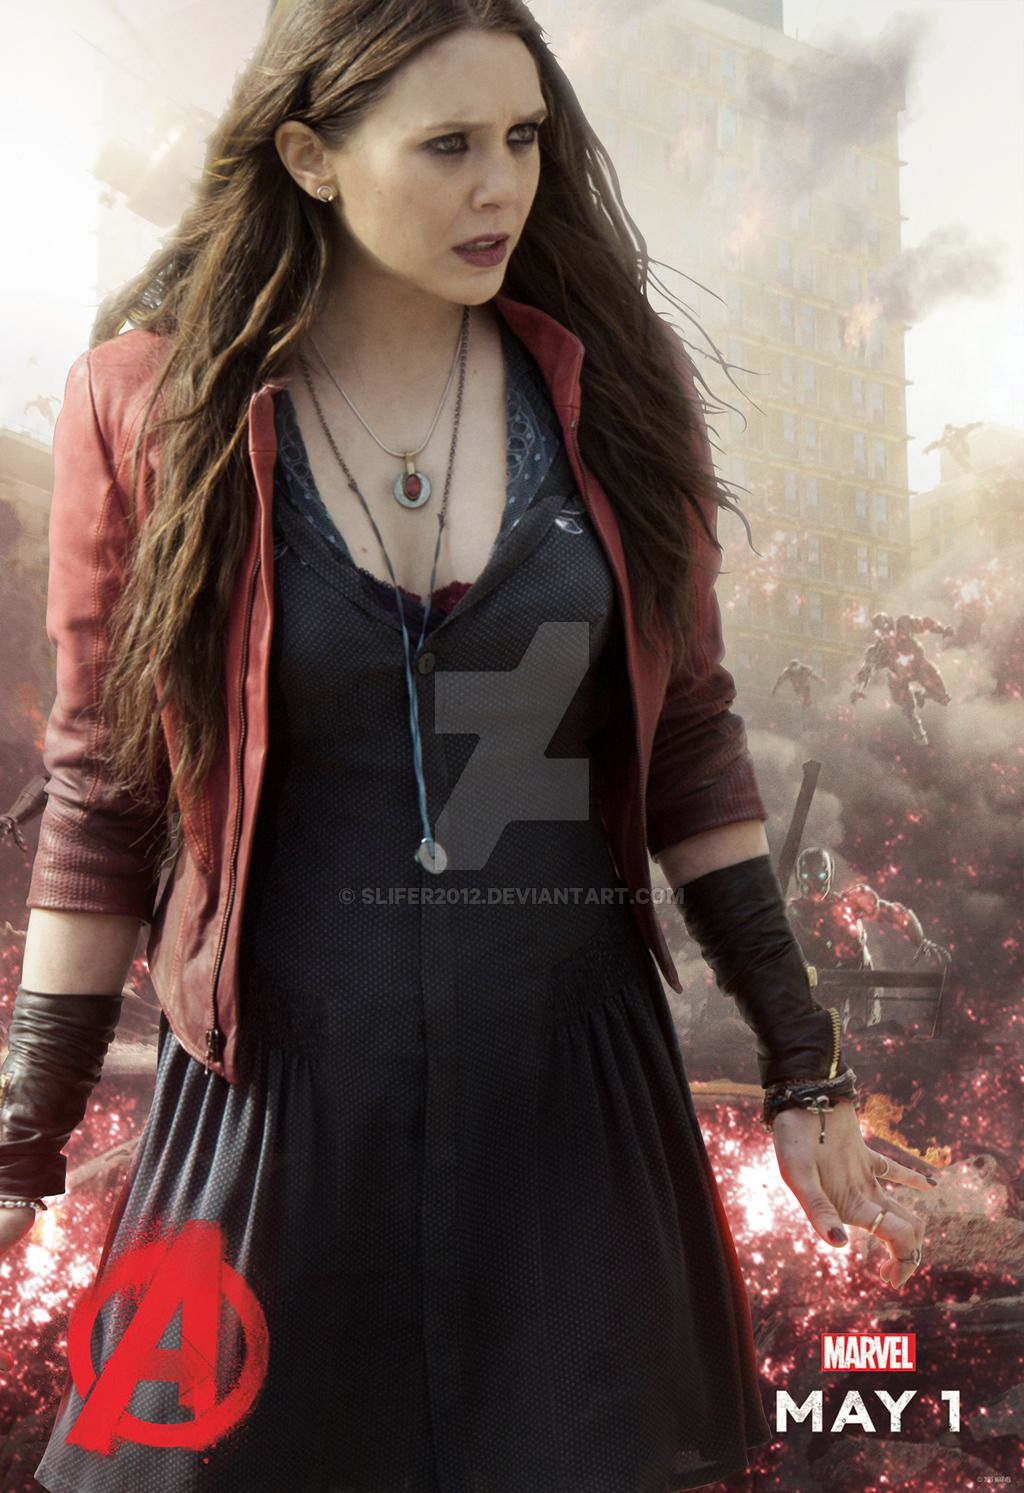 Scarlet Witch Avengers Age Of Ultron Scarlet Witch Avengers Scarlet Witch Cosplay Scarlet Witch